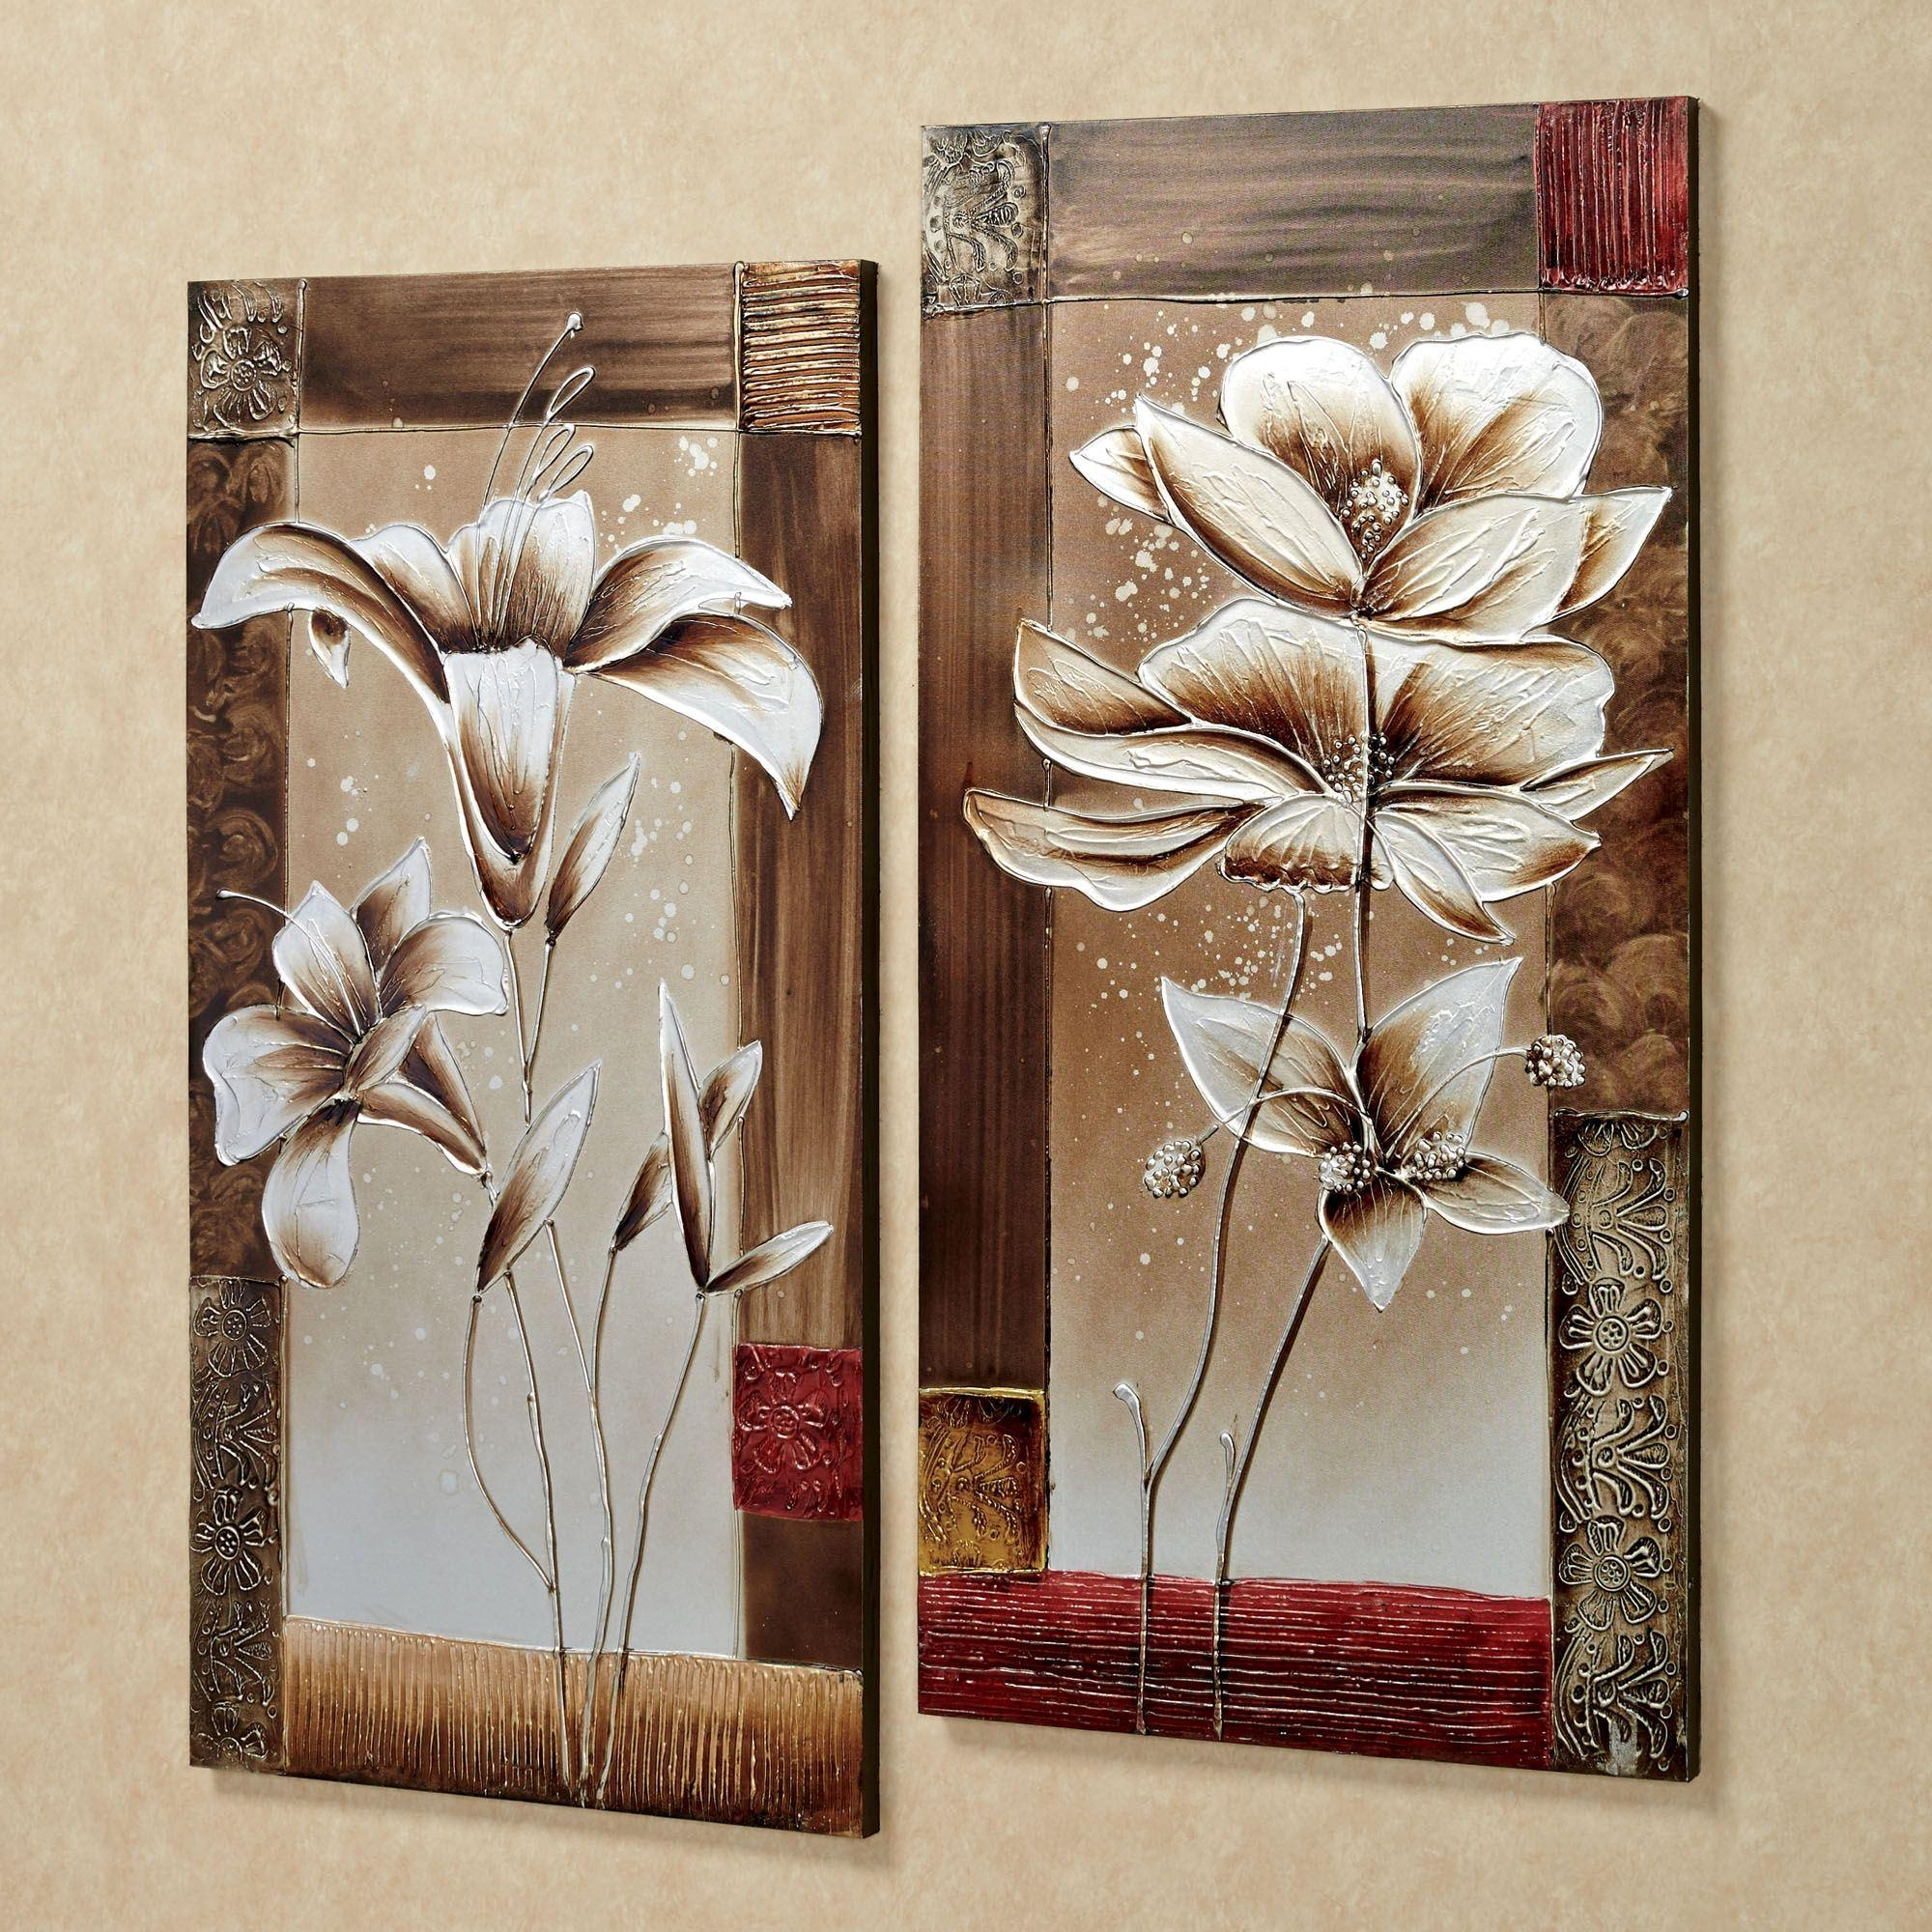 Wall Art: Awesome Floral Canvas Wall Art Wrapped Canvas Floral Intended For Botanical Metal Wall Art (Image 20 of 20)